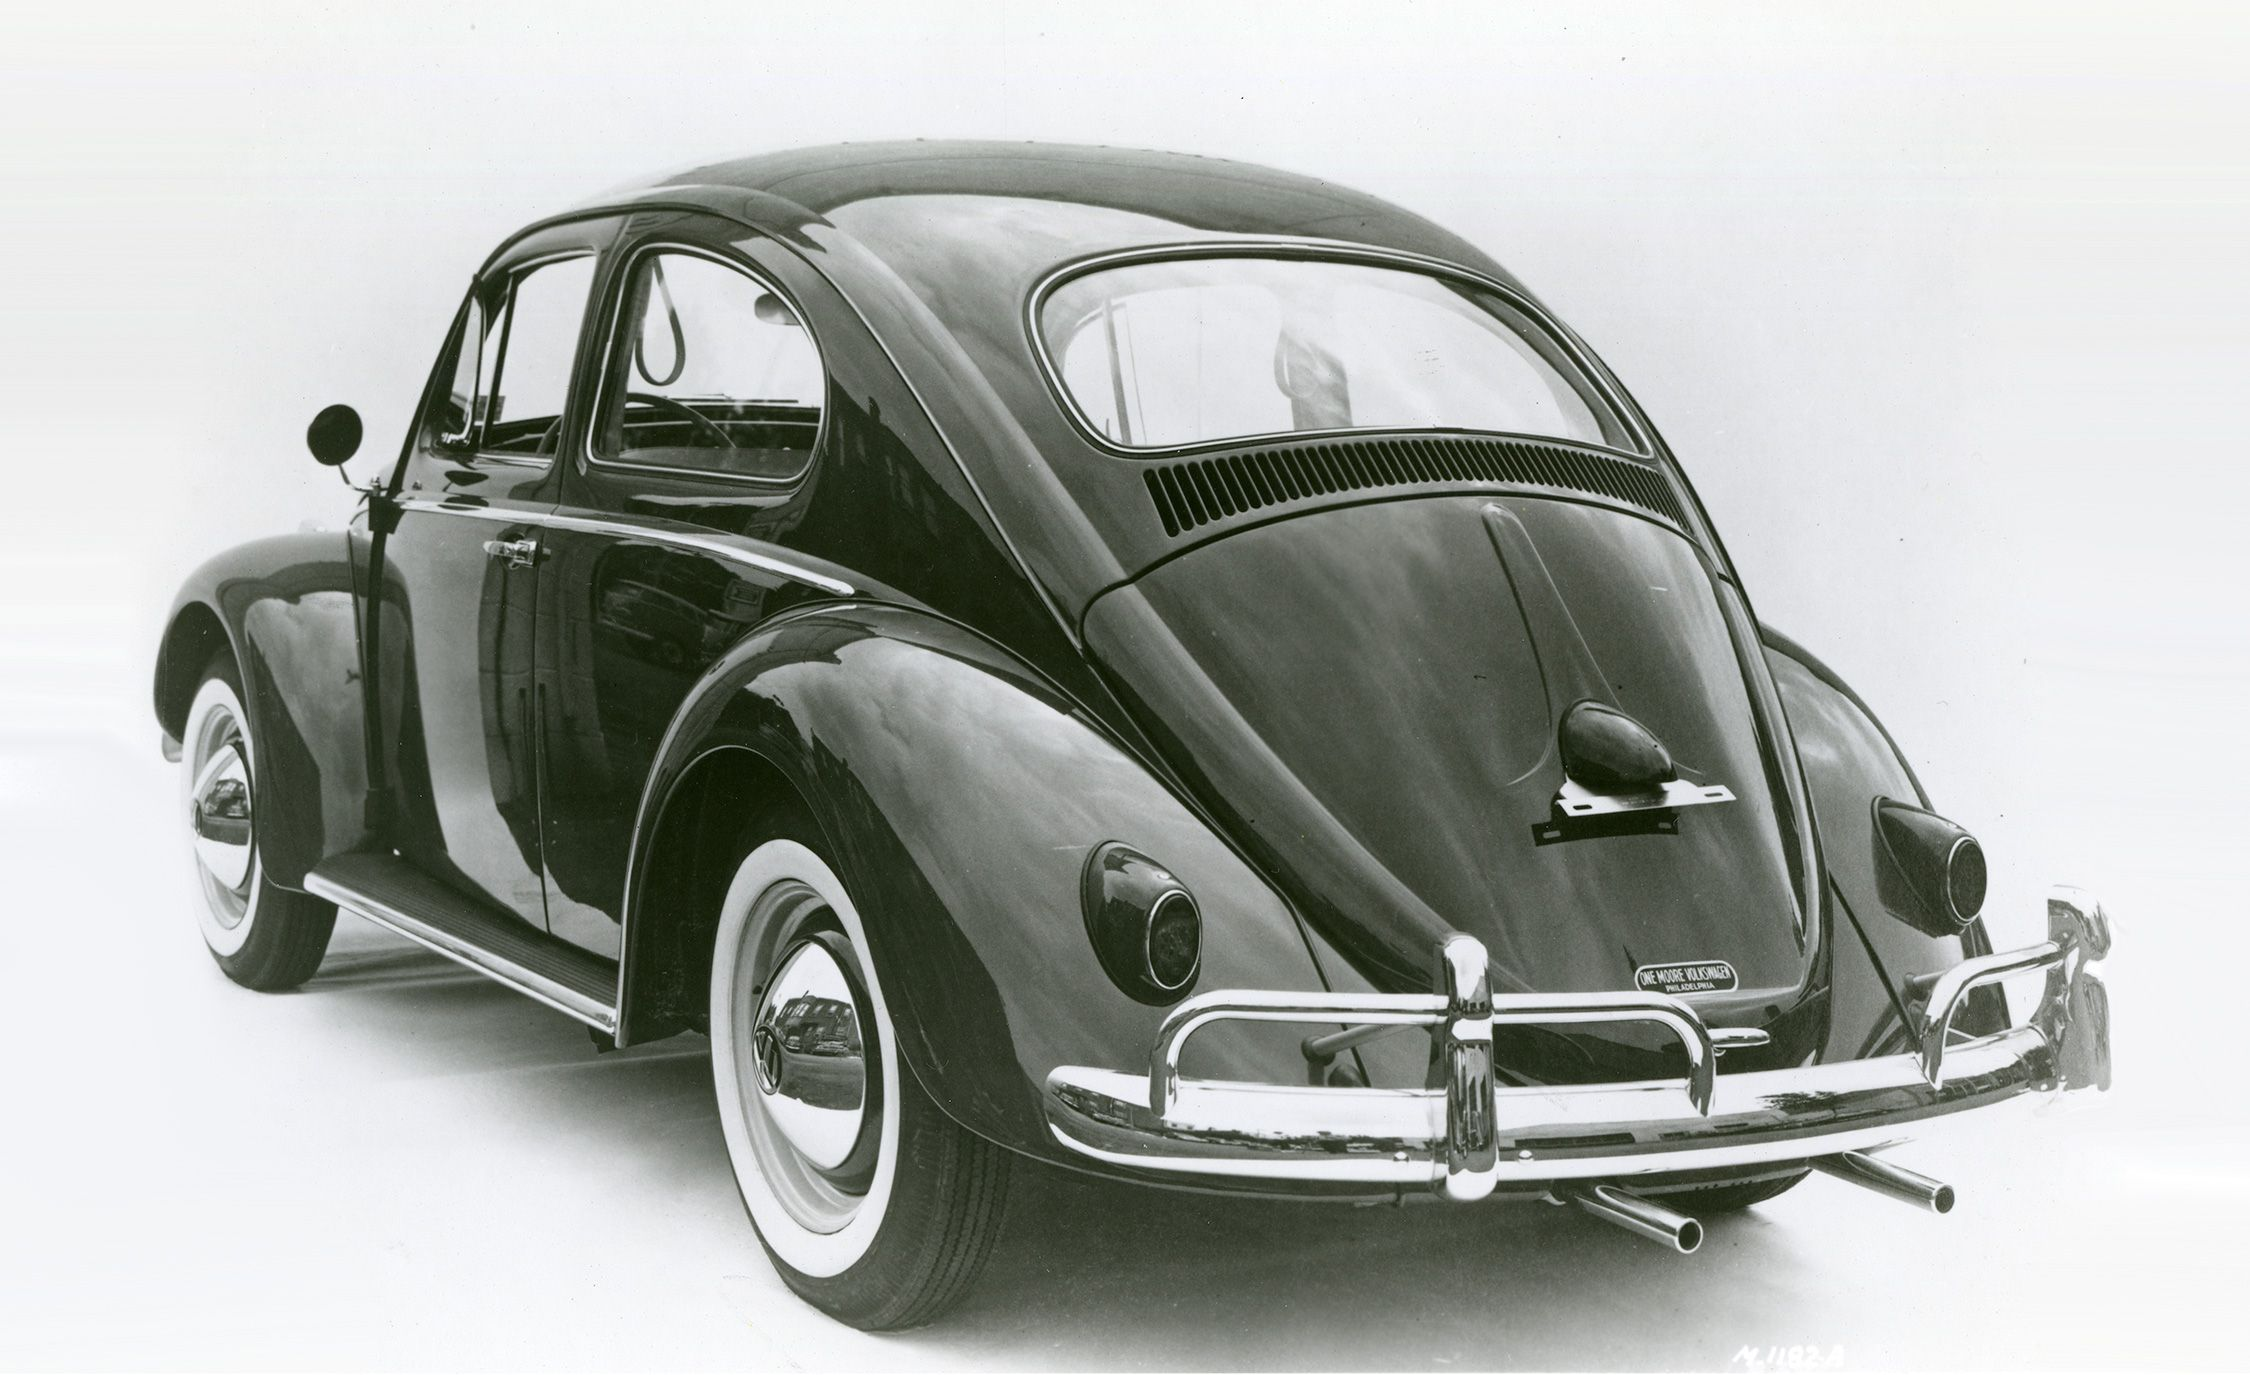 small resolution of volkswagen beetle models by year old and classic vw bugs stick shift electrical circuit diagram vw beetle early model stick